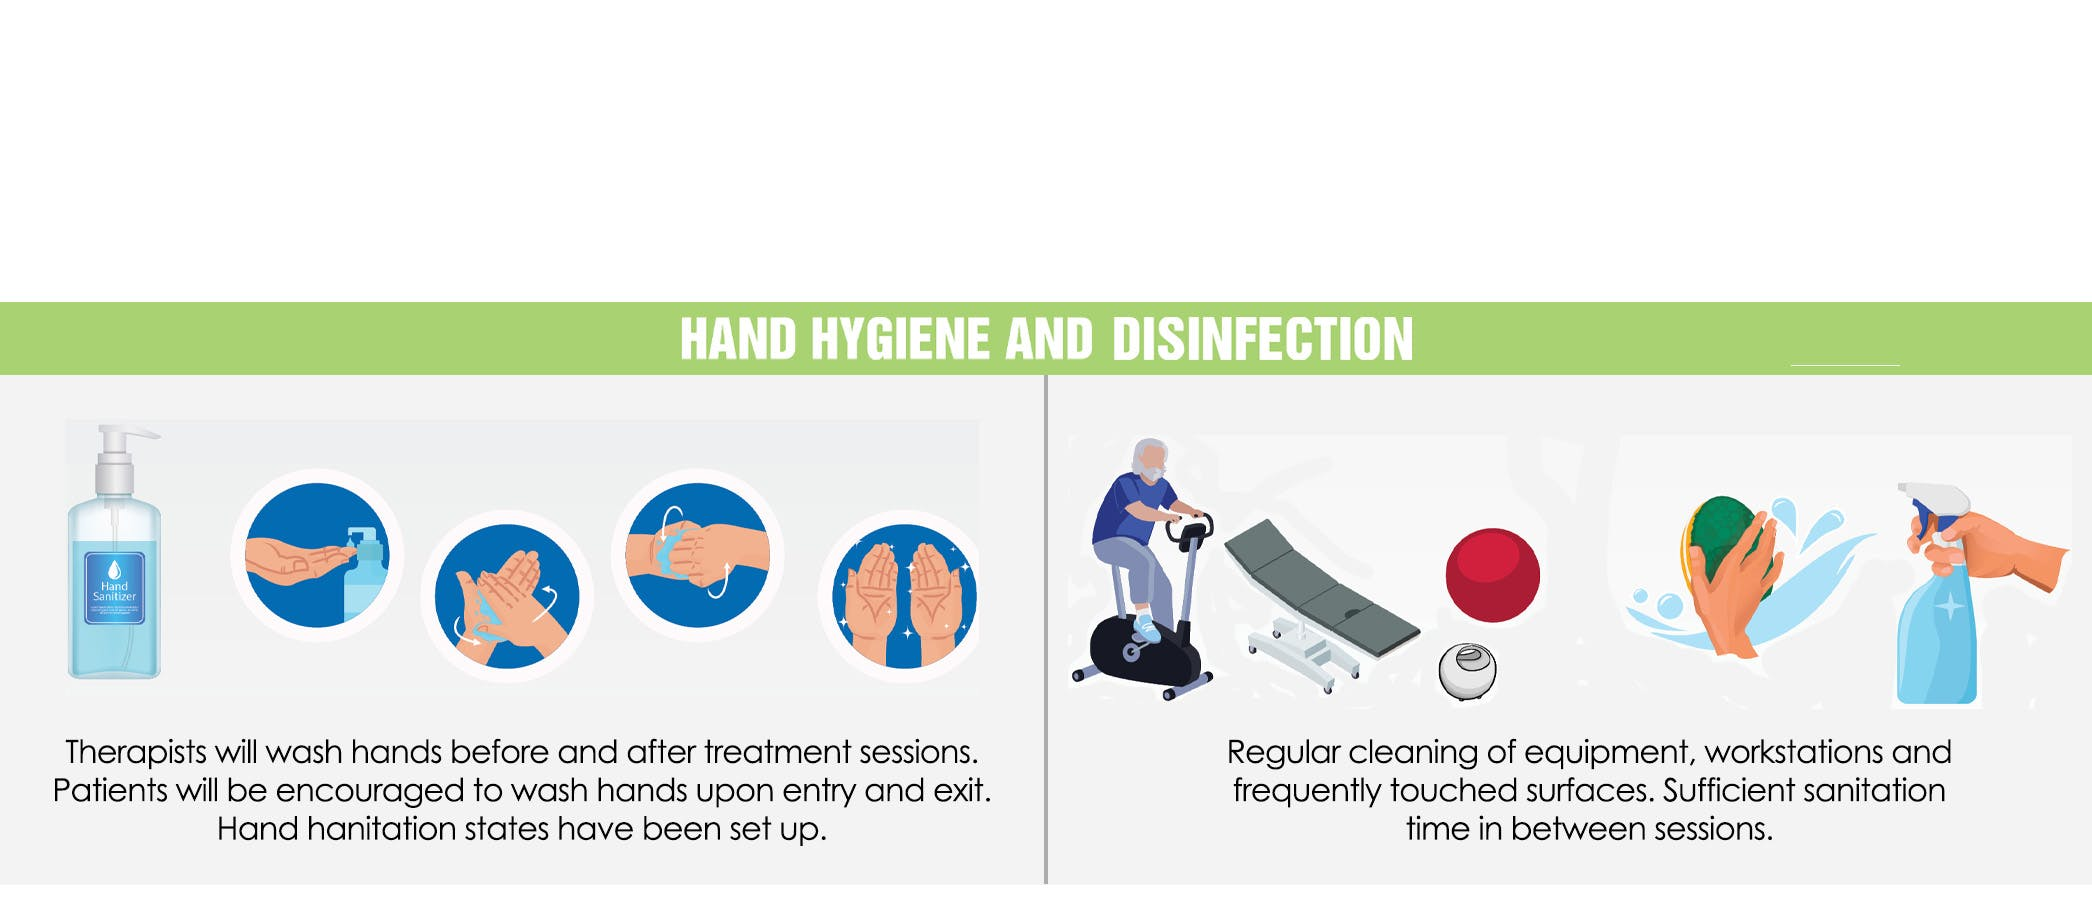 Hand Hygiene and Disinfection